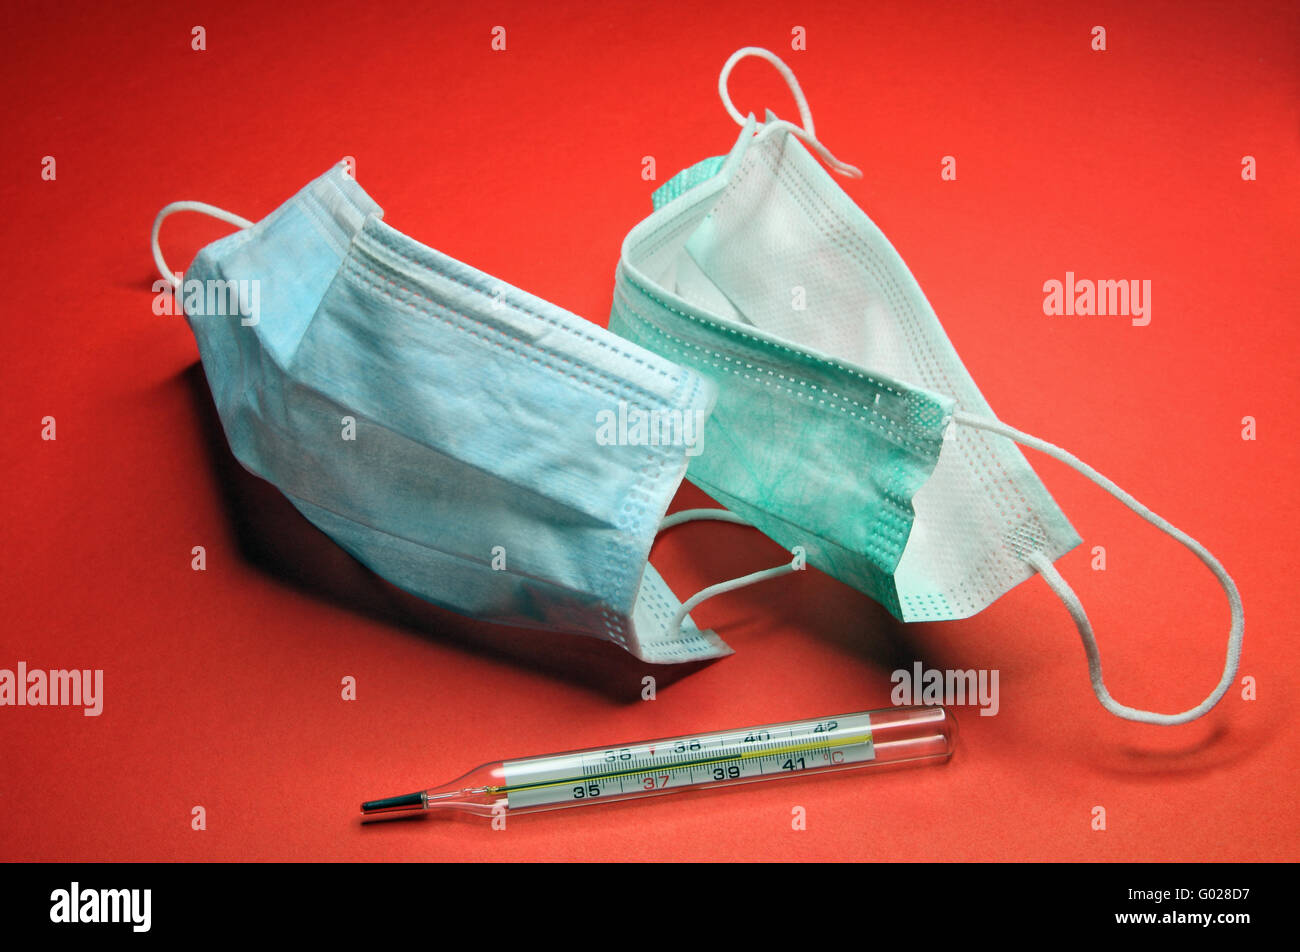 Medical means for protection against an infection and definition of diseases - Stock Image